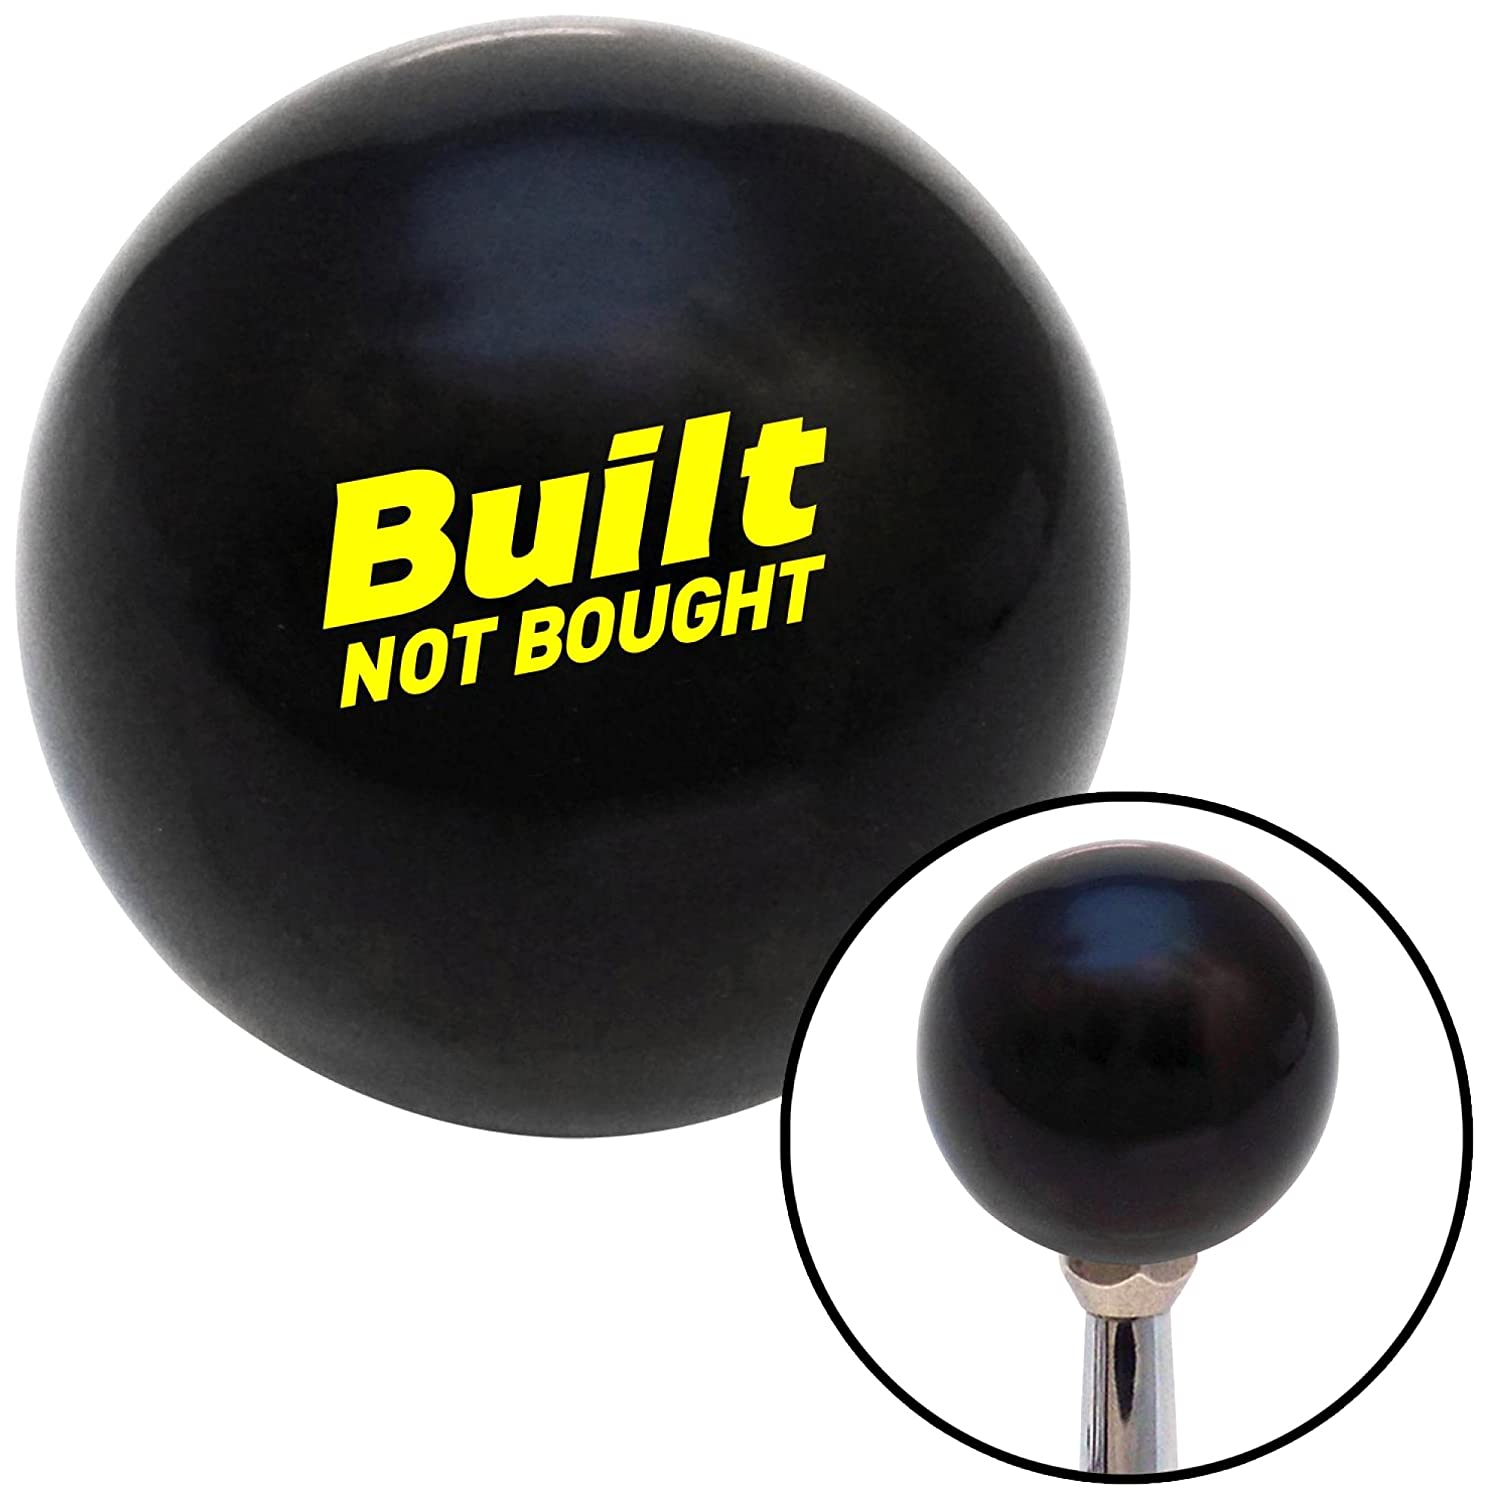 American Shifter 327627 Yellow Built Not Bought Simple Black Shift Knob with M16 x 1.5 Insert